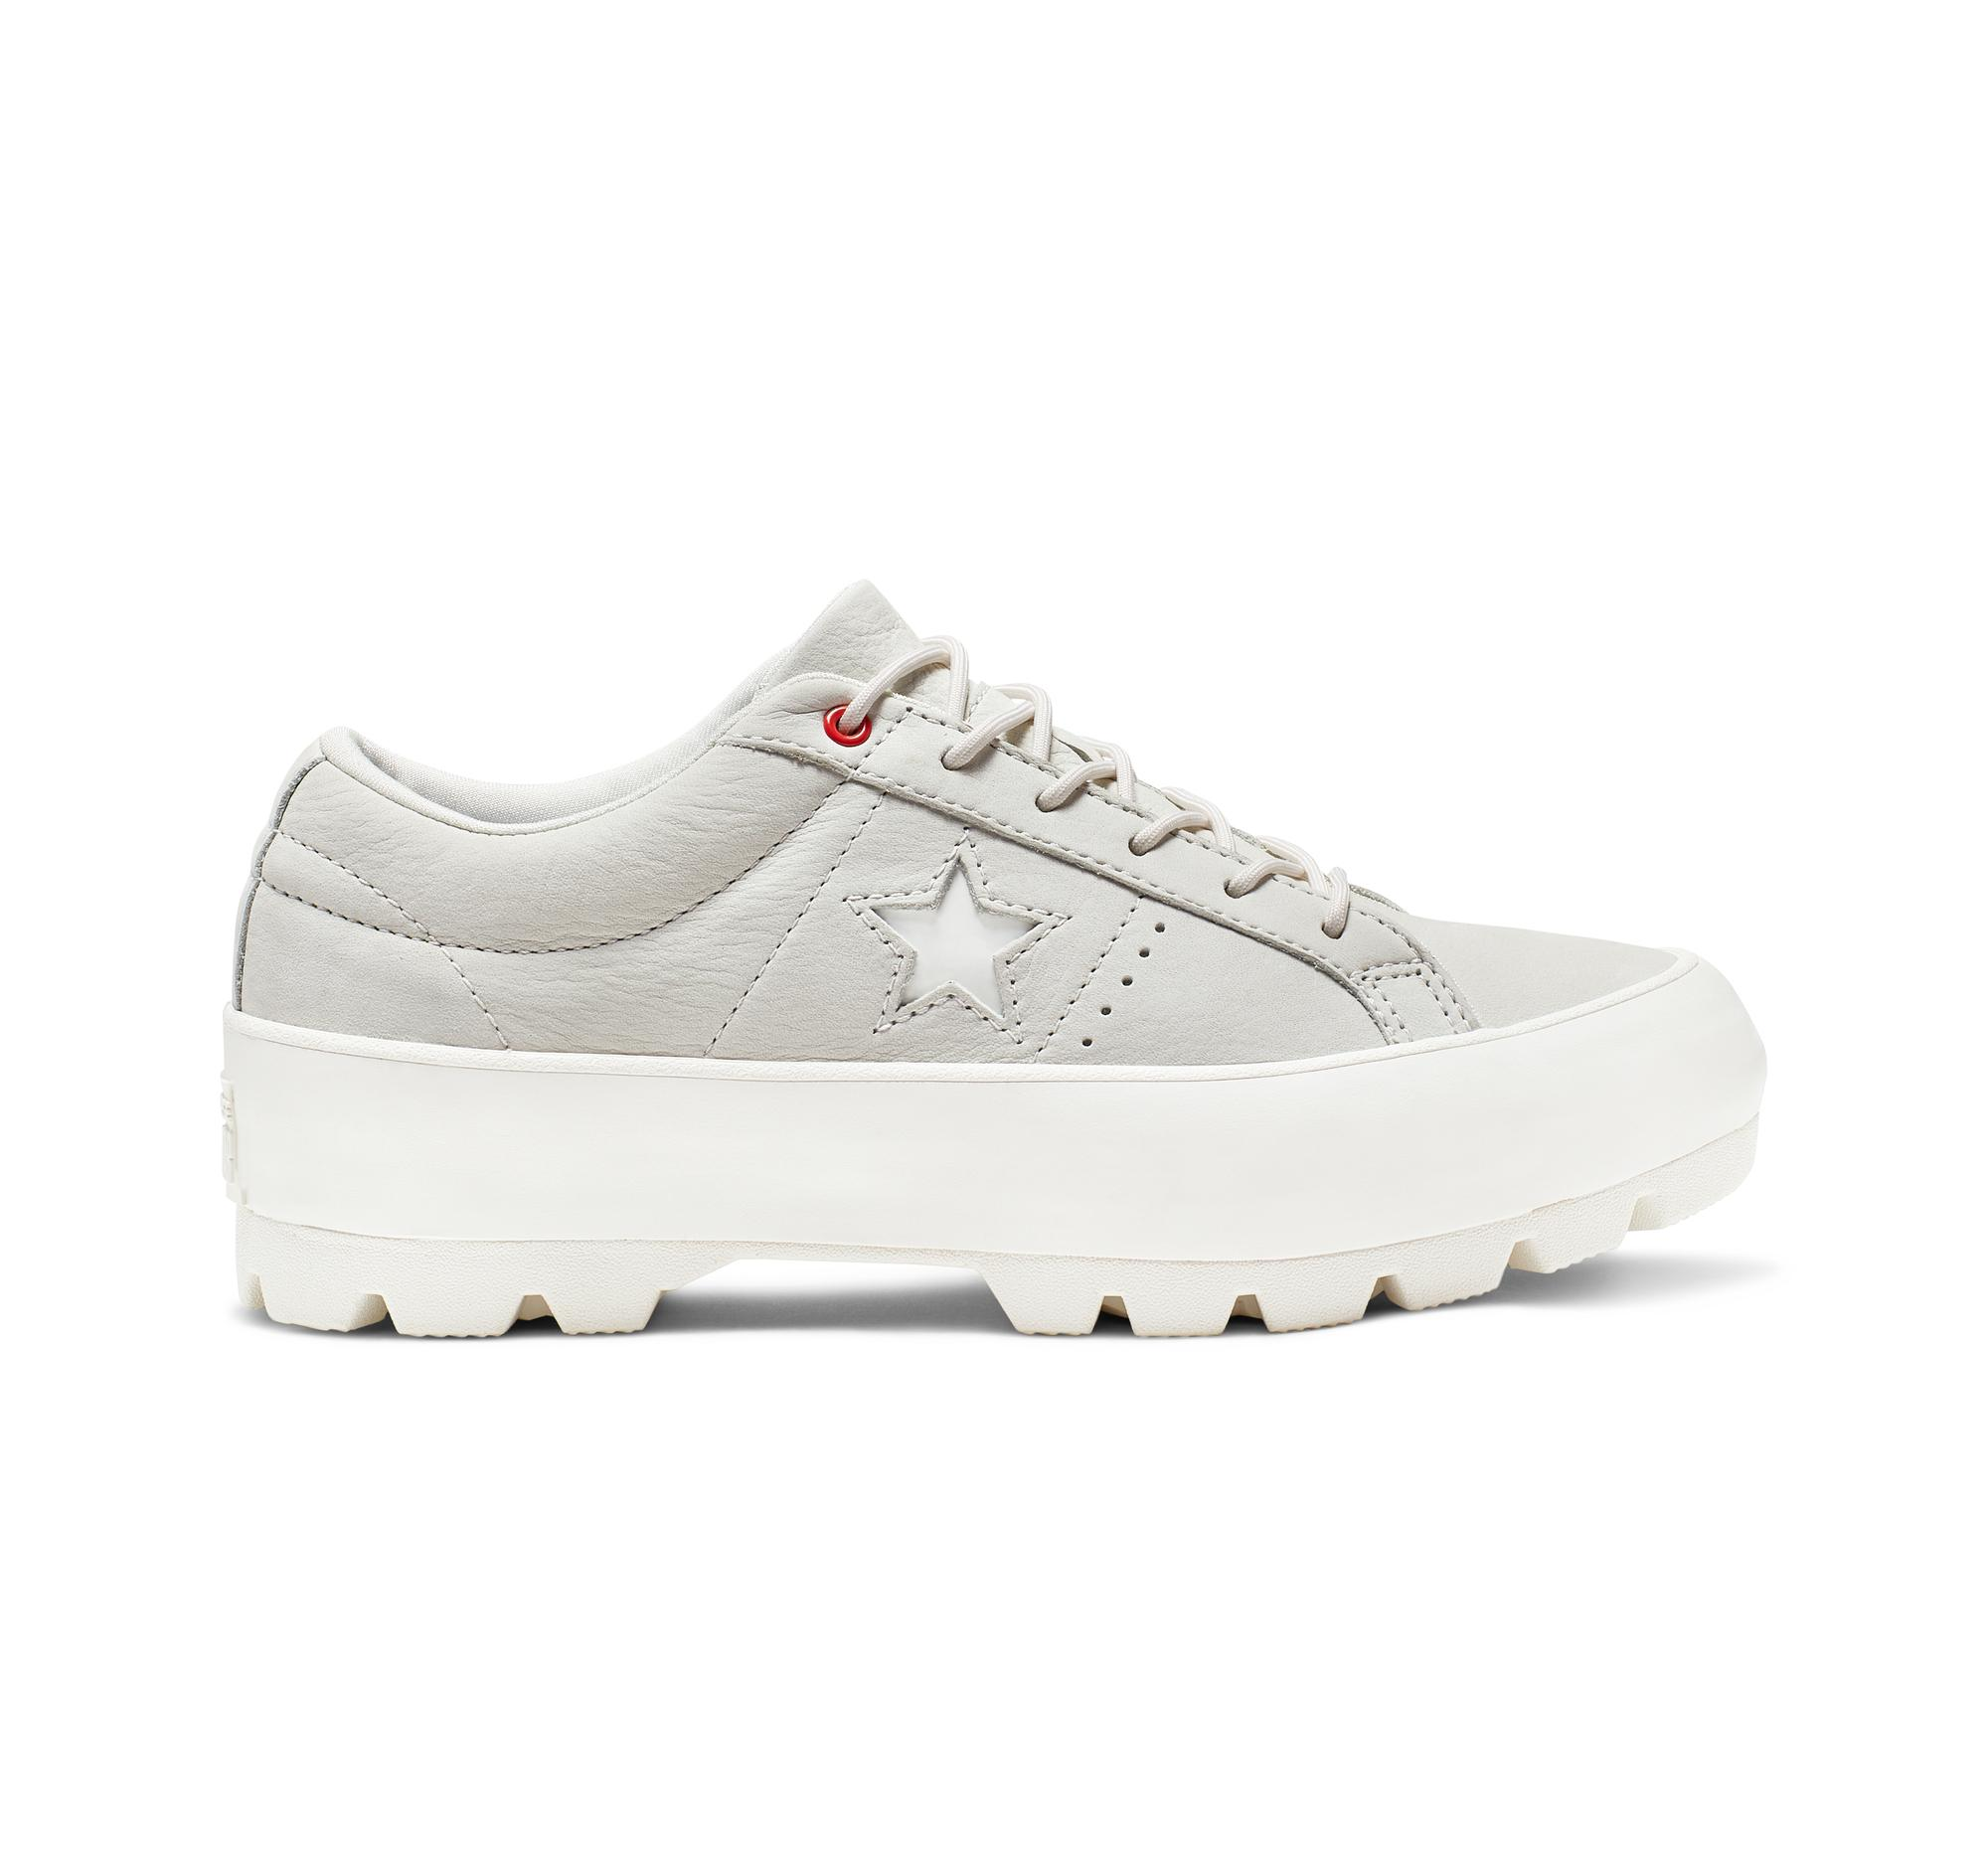 Converse One Star Lugged Low Top in